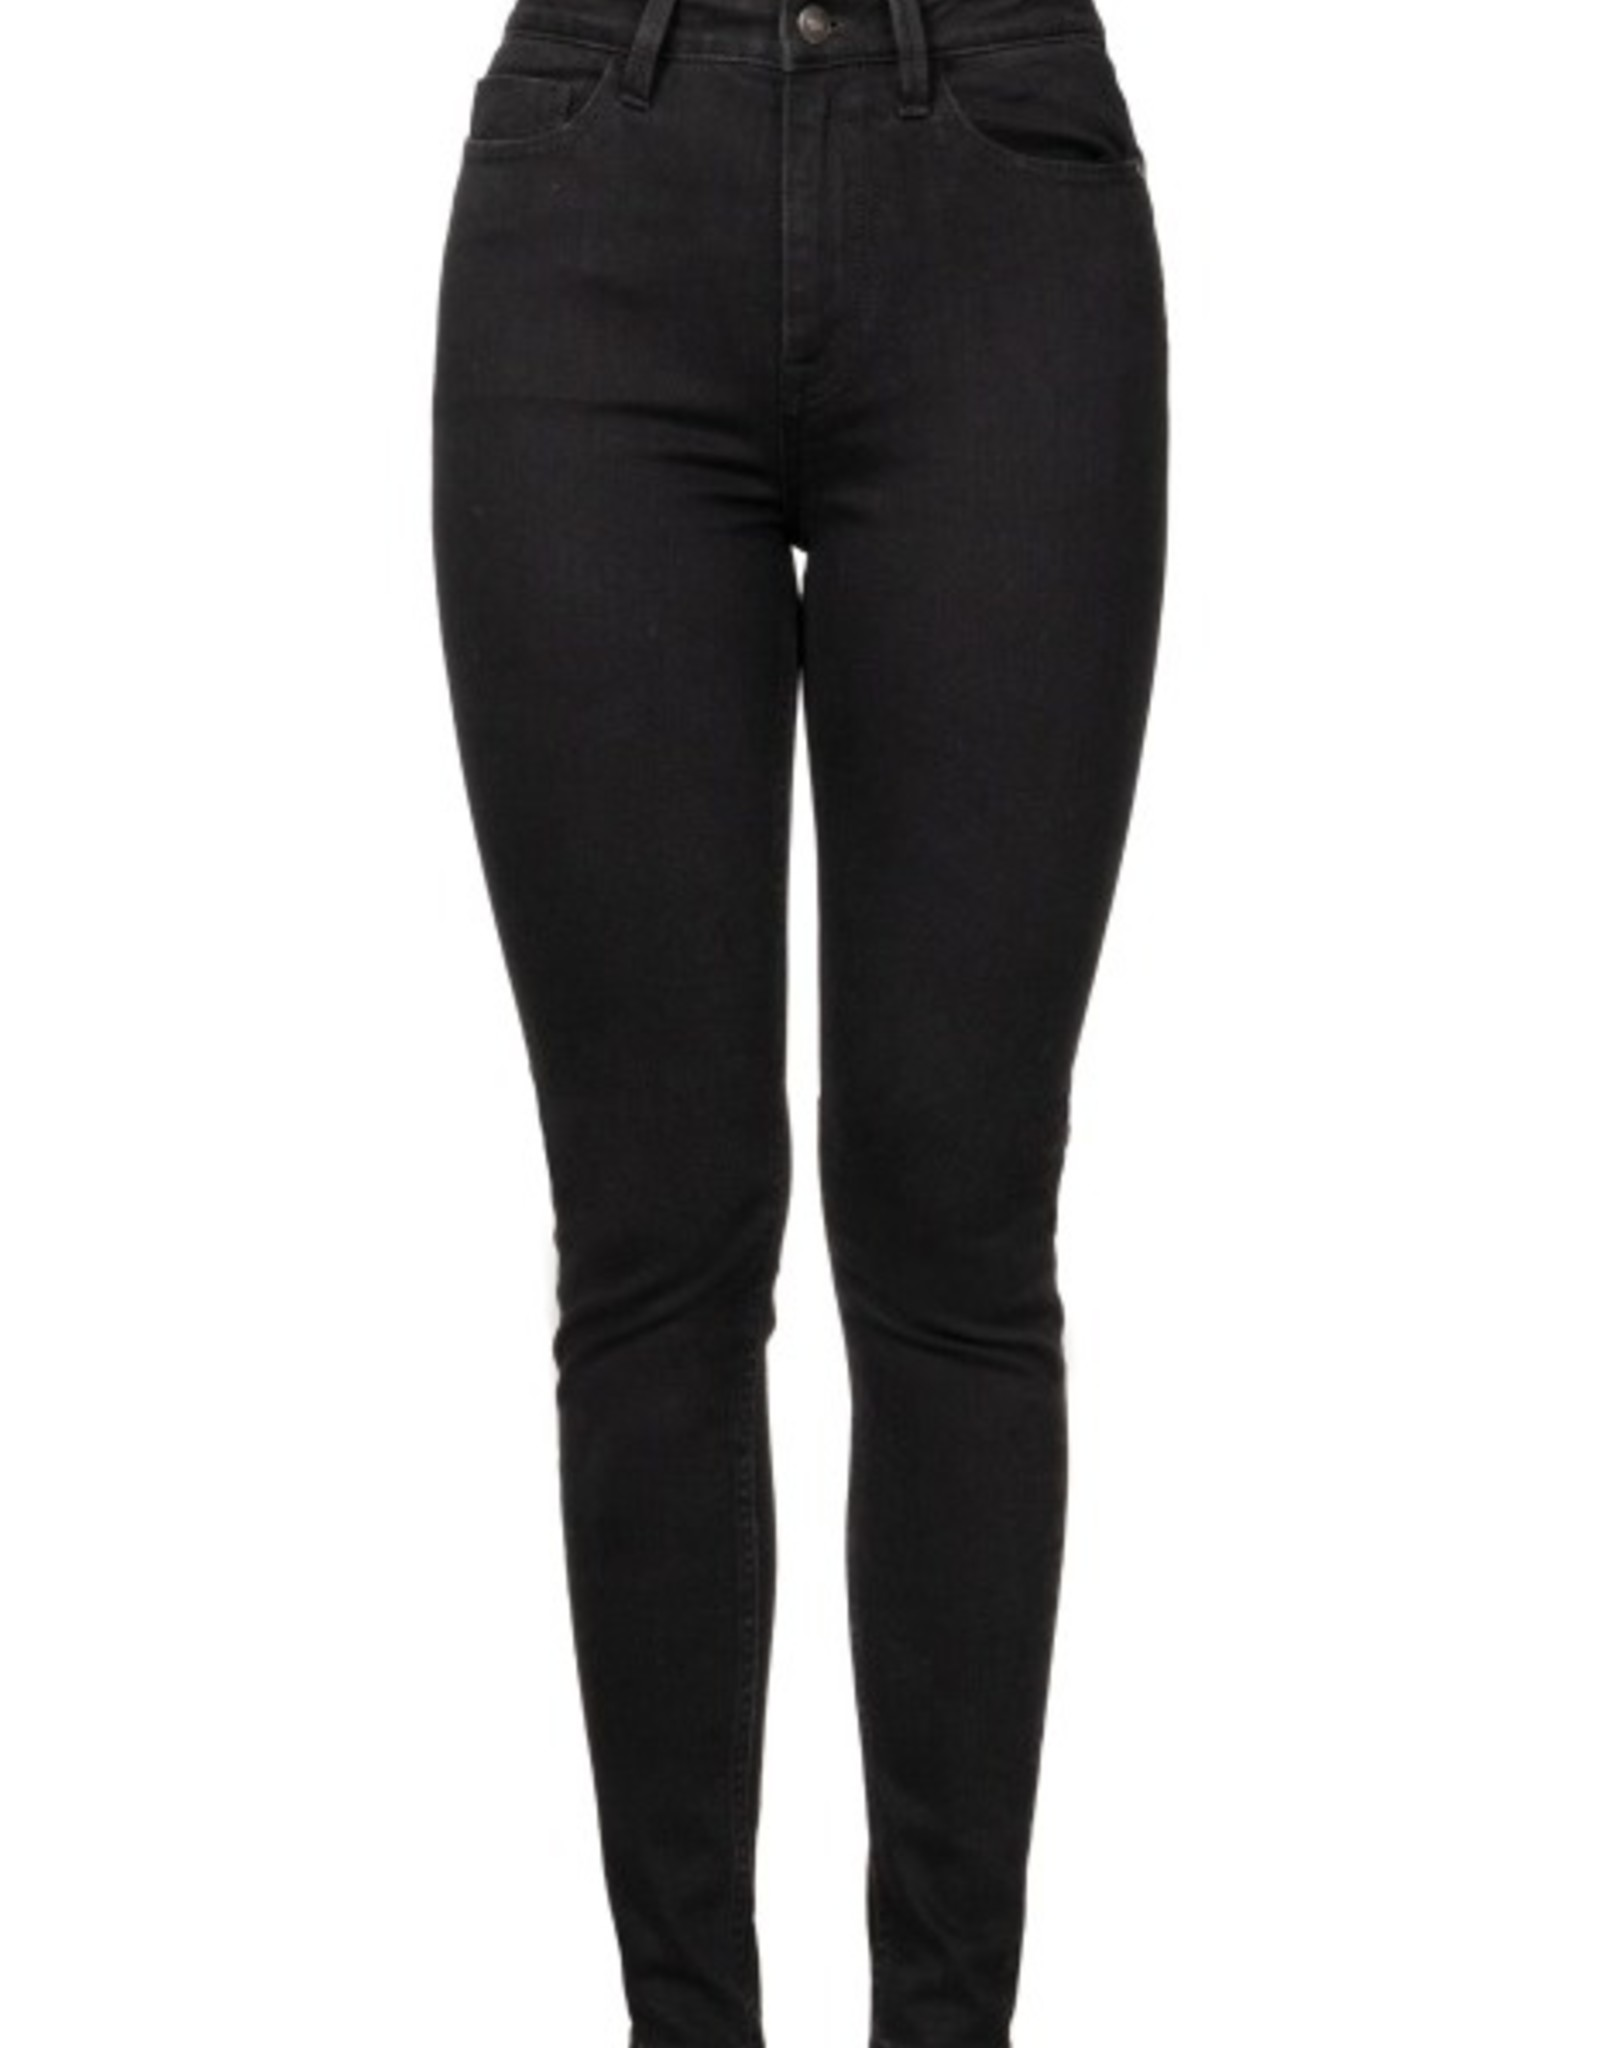 Zusss Stoere Jeans